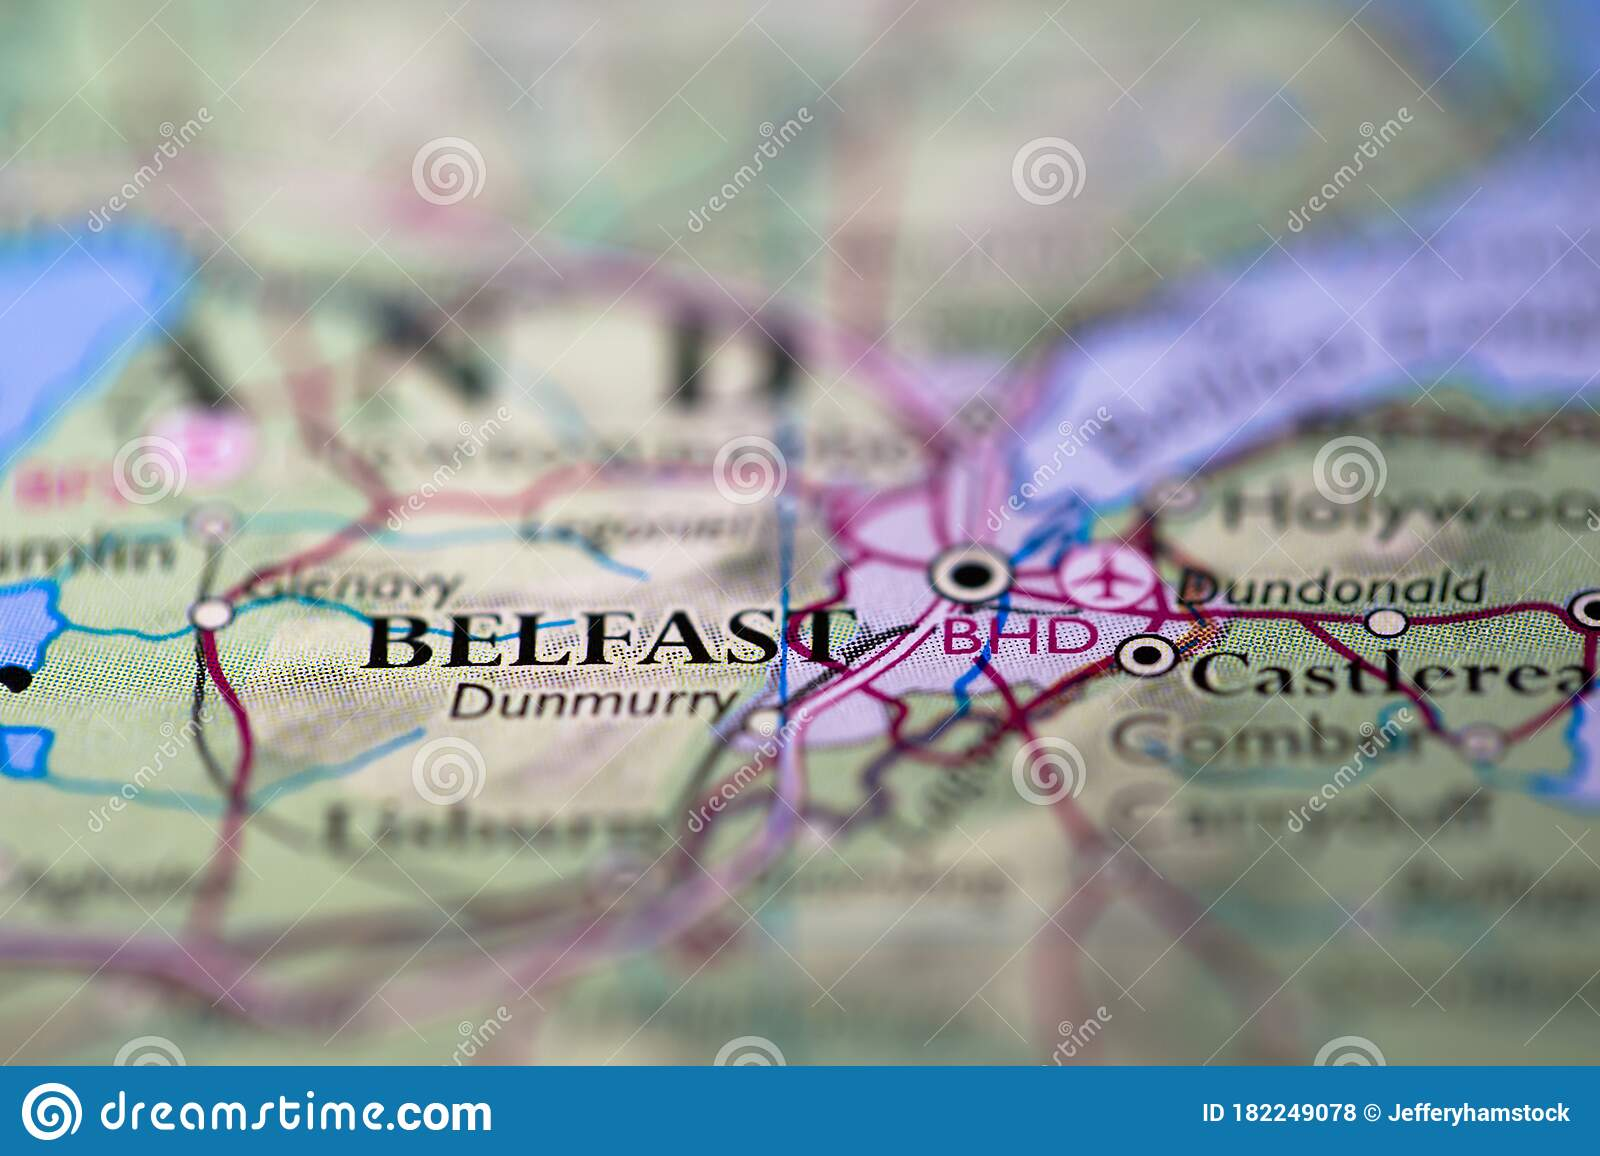 Picture of: Geographical Map Location Of Belfast City In Northern Island United Kingdom Europe Continent On Atlas Stock Photo Image Of Atlas Ireland 182249078